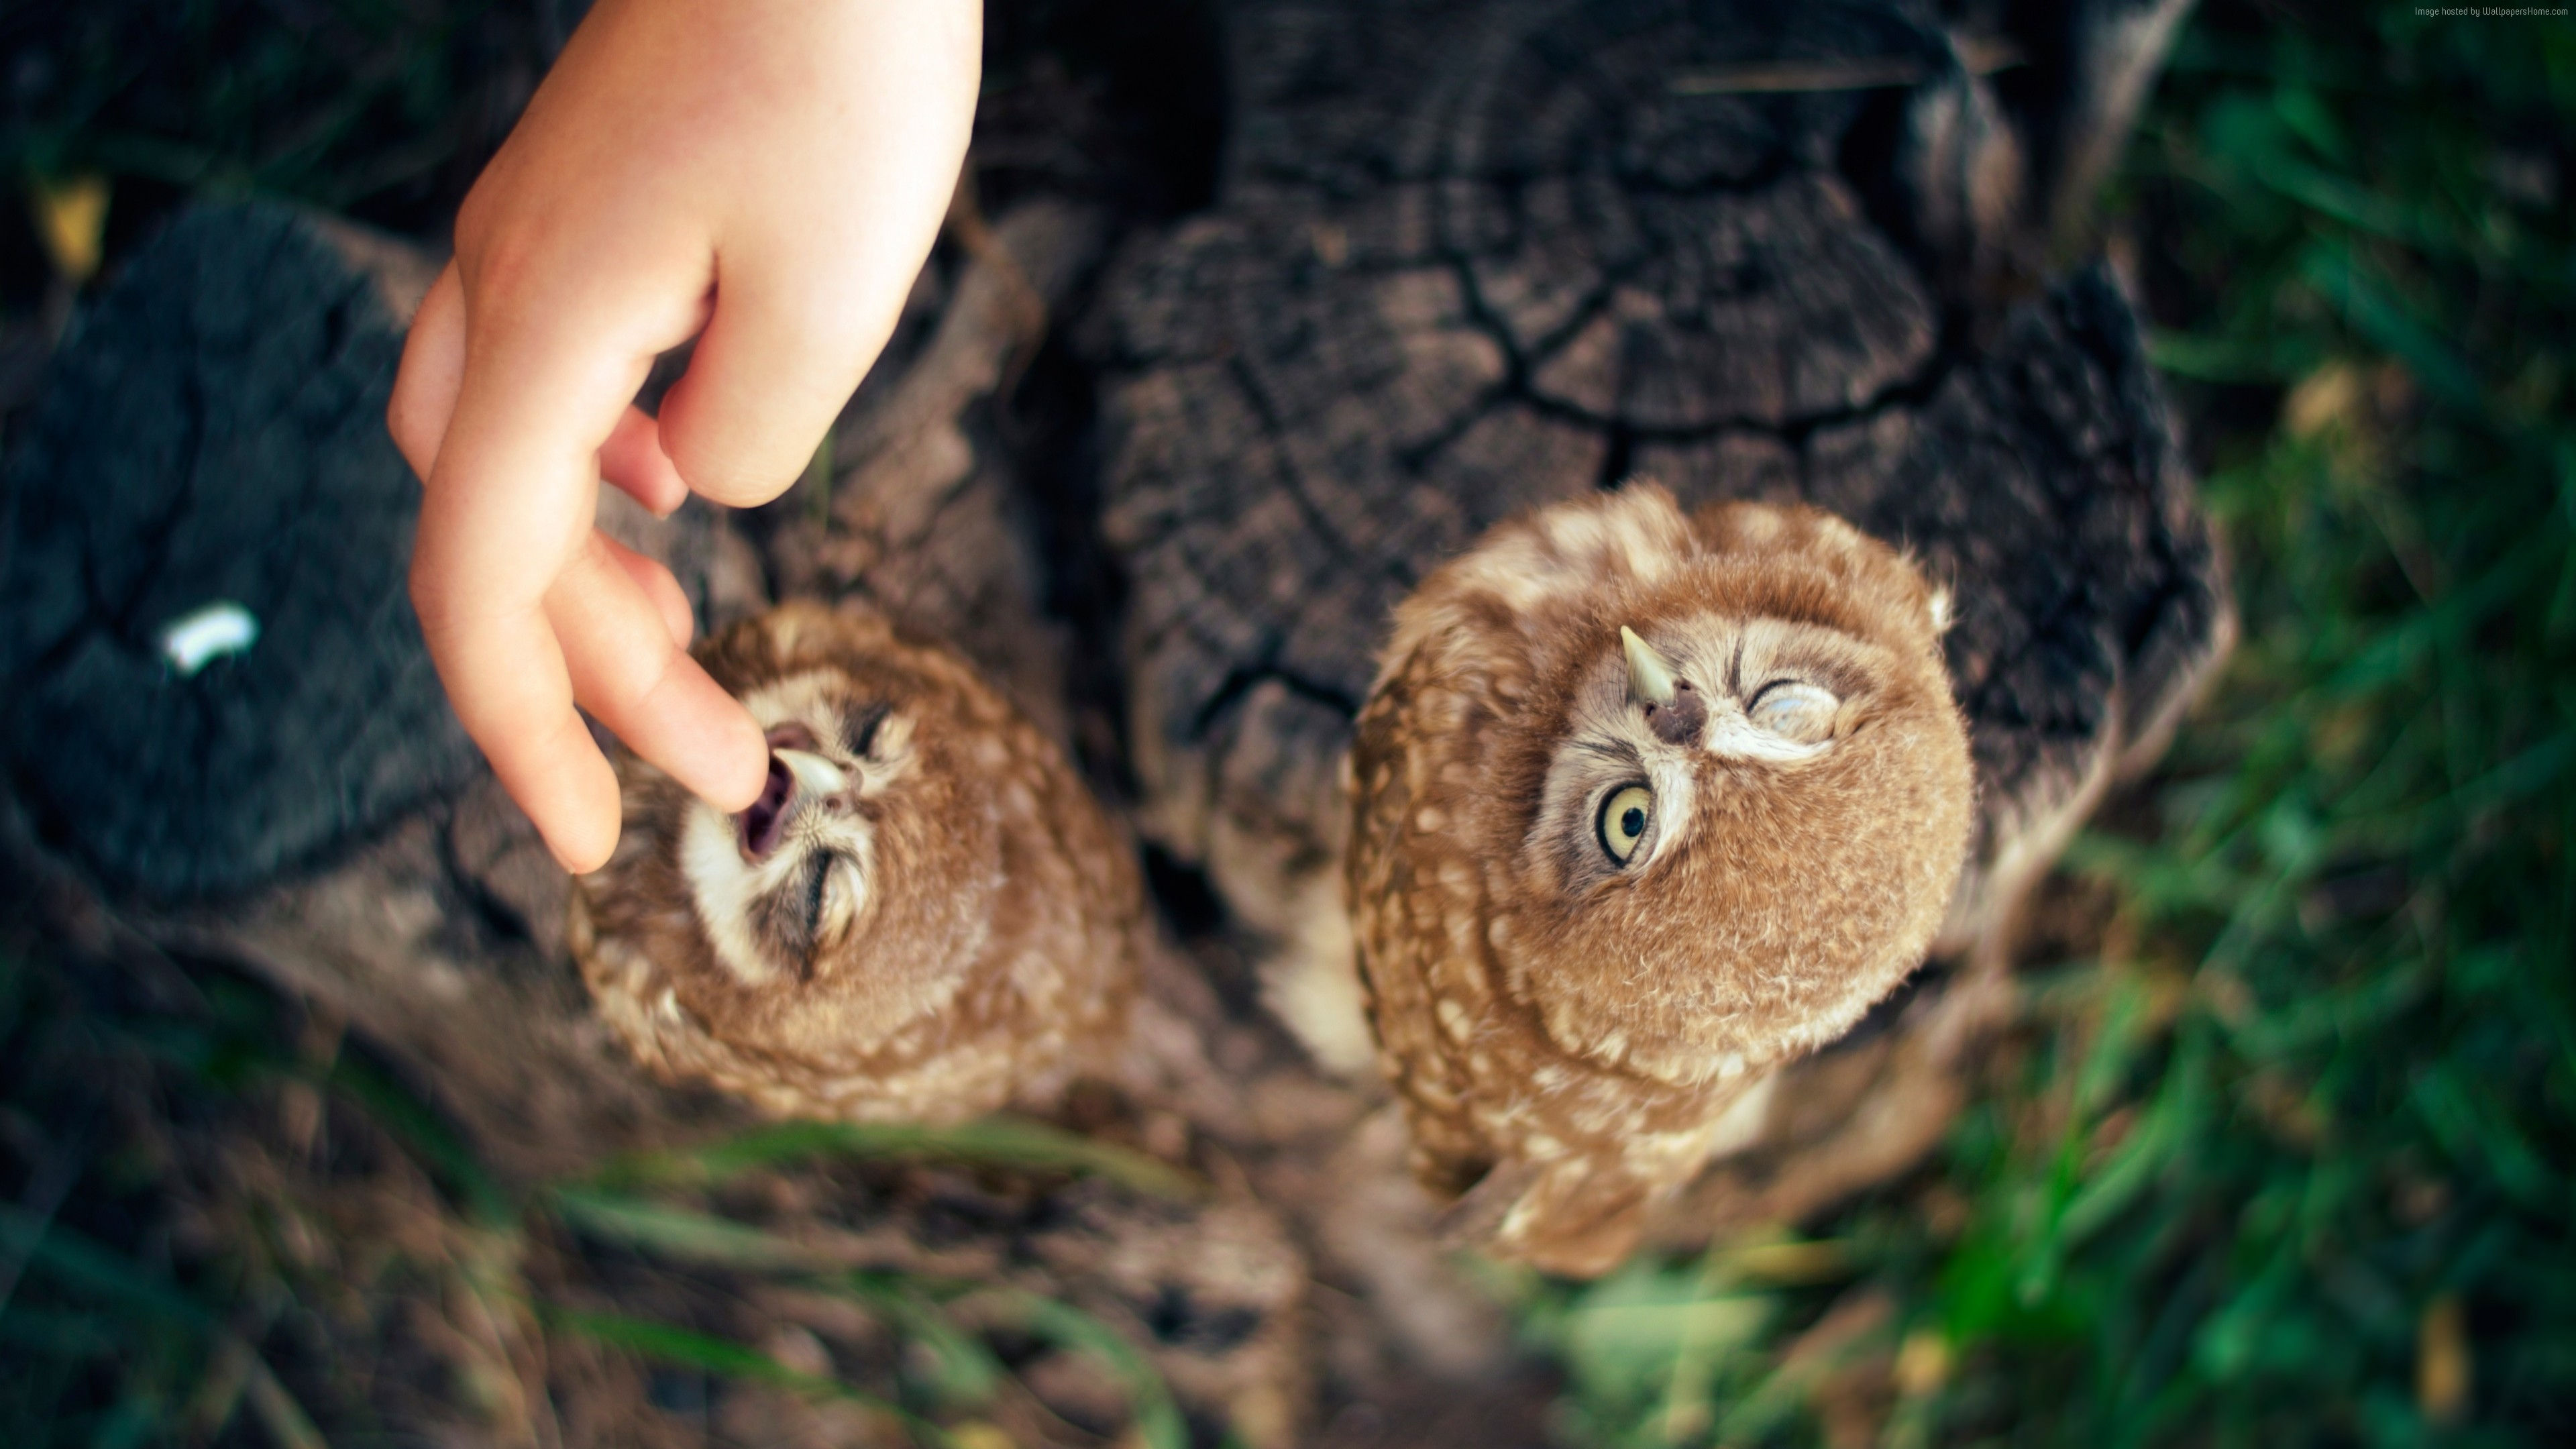 Wallpaper Owl, Ann and Hayk Owls, Armenia, cute, hand, Animals